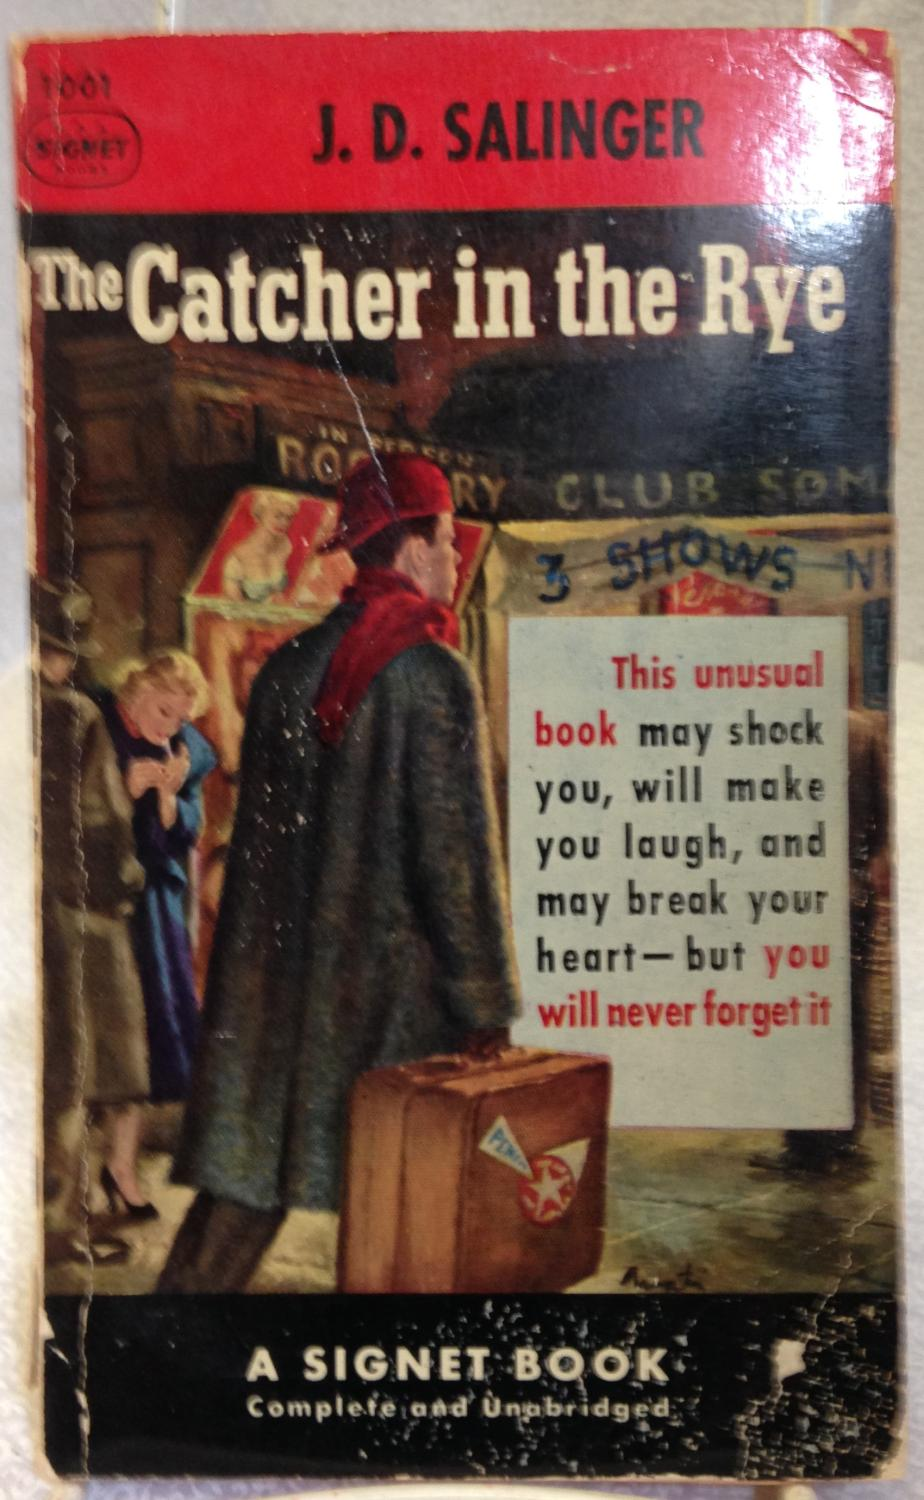 the low self esteem of holden caulfield in the catcher in the rye by j d salinger Feelings of guilt or low self-worth in jd salinger's novel, holden caulfield has to deal with the loss of depression in the catcher in the rye, by j.